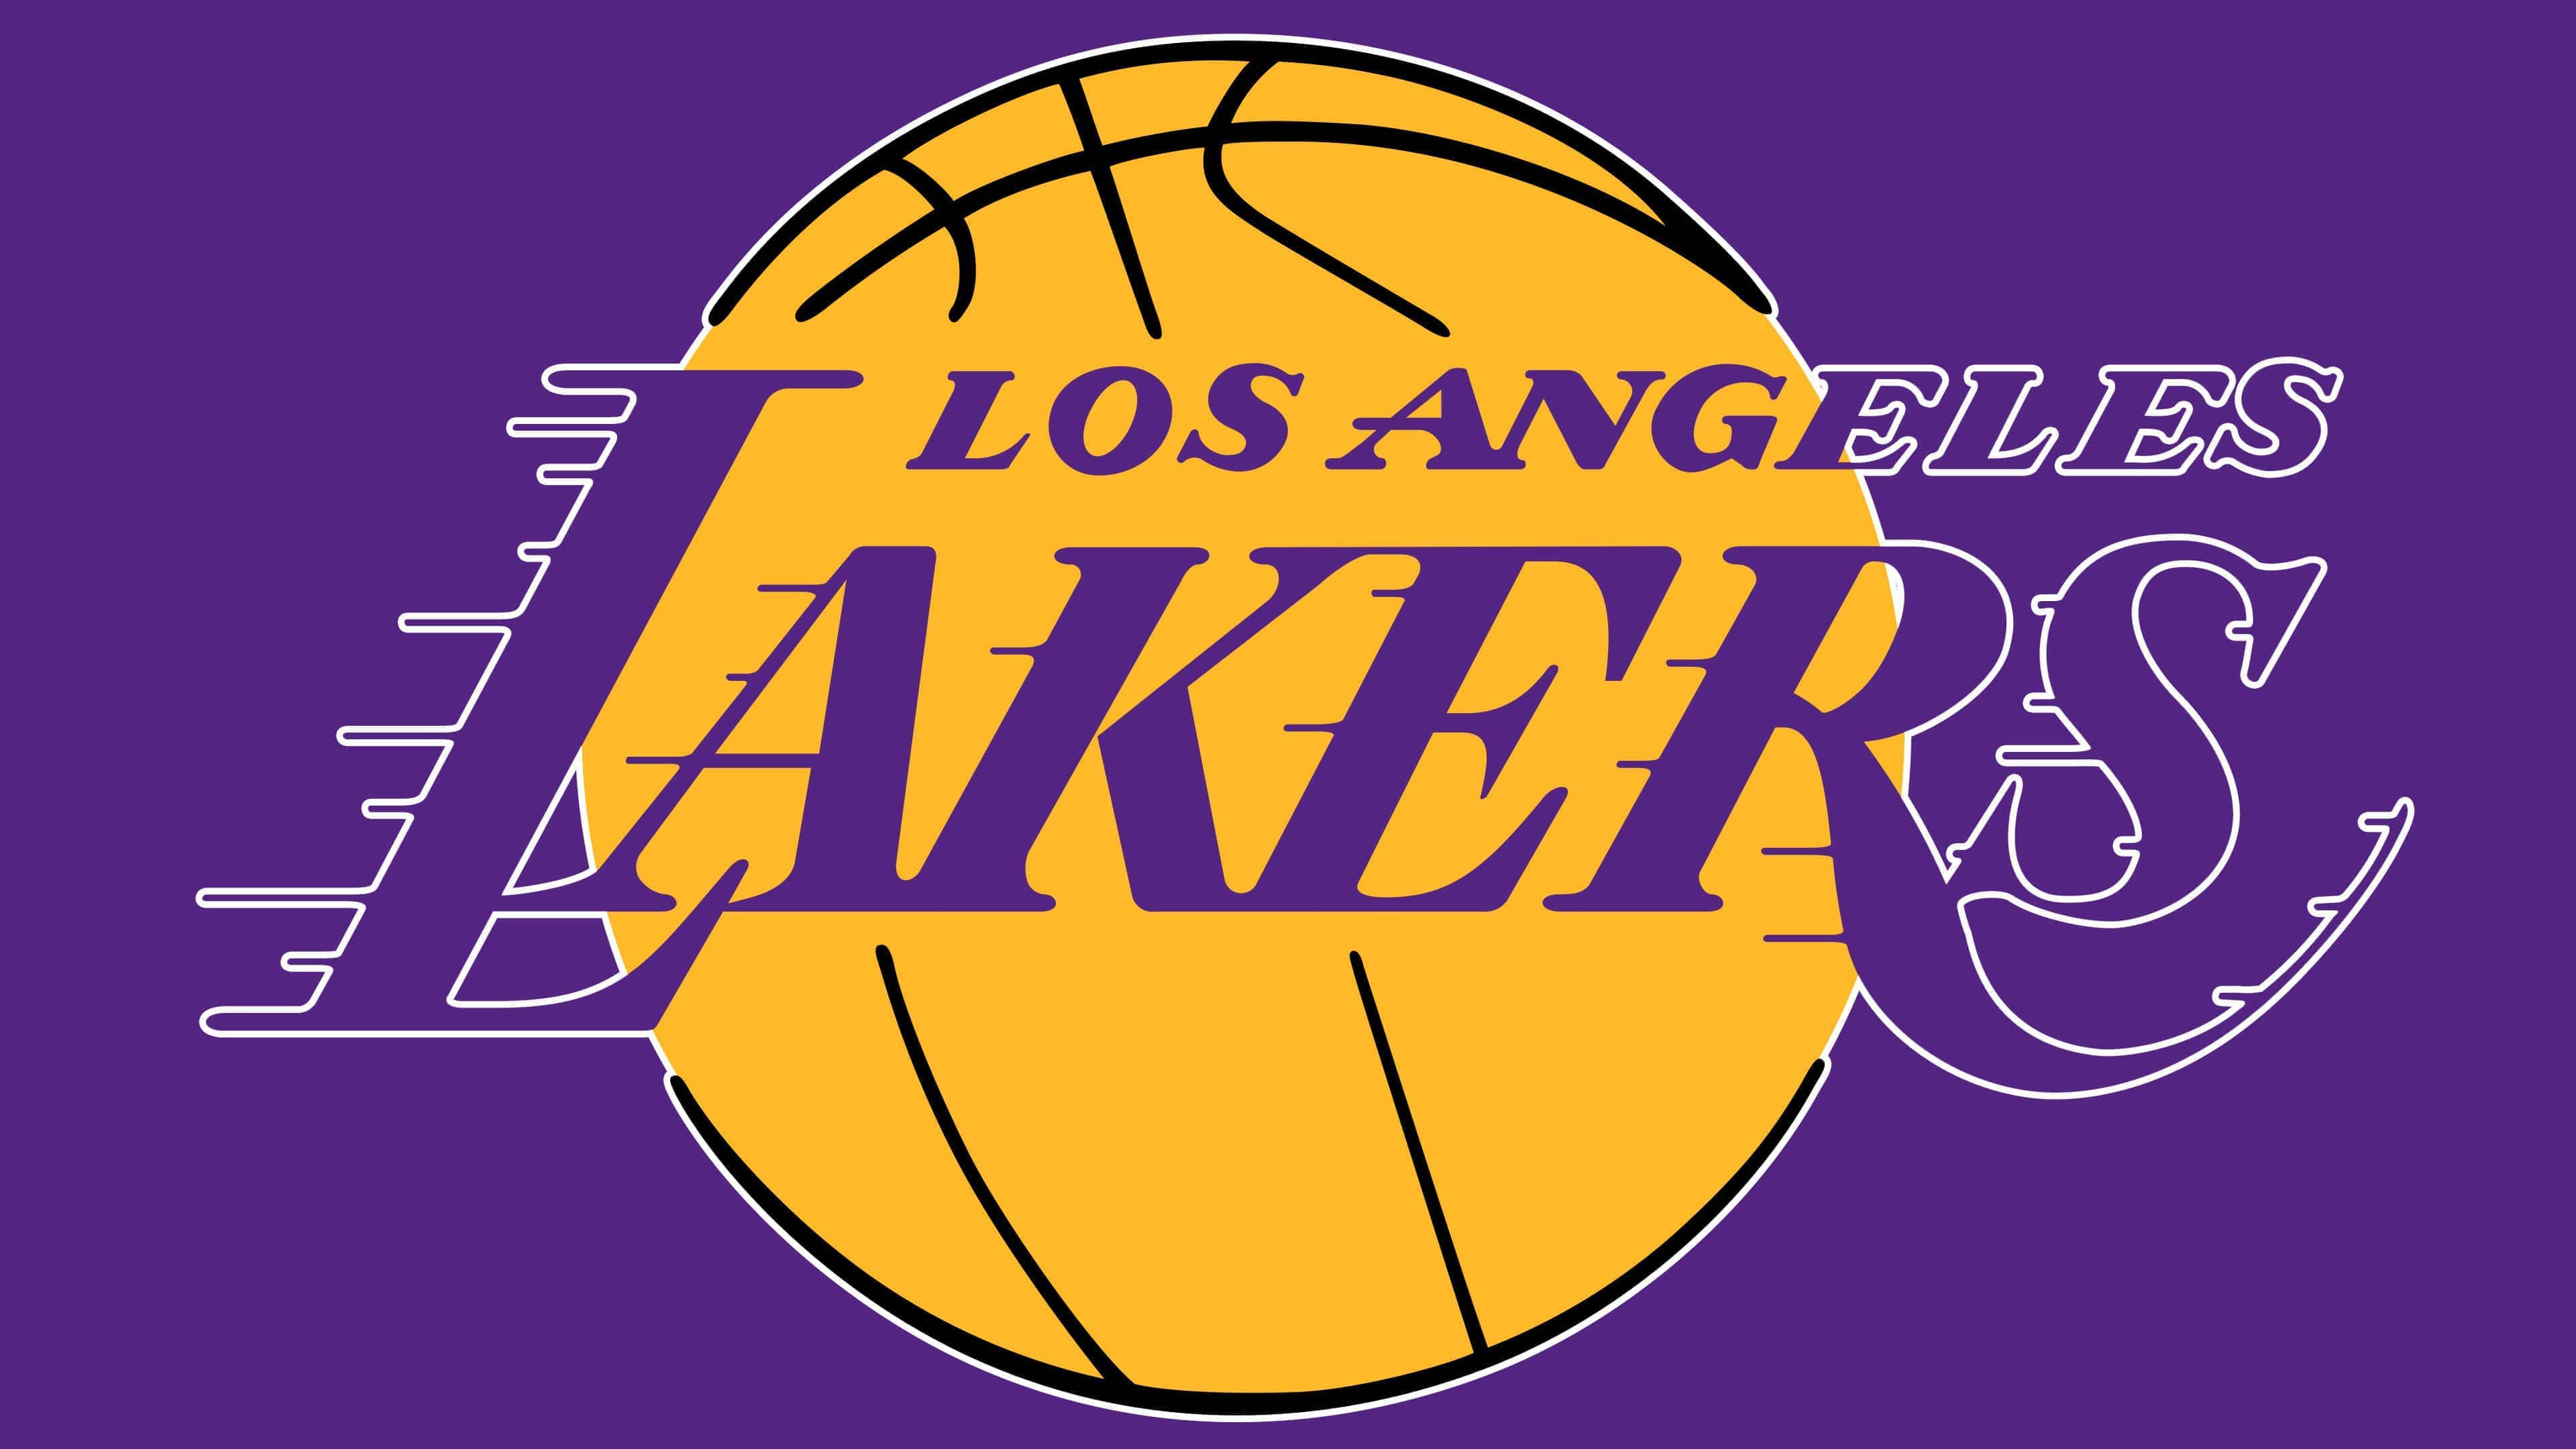 Los Angeles Lakers Logo The Most Famous Brands And Company Logos In The World,Digital Marketing Website Designs